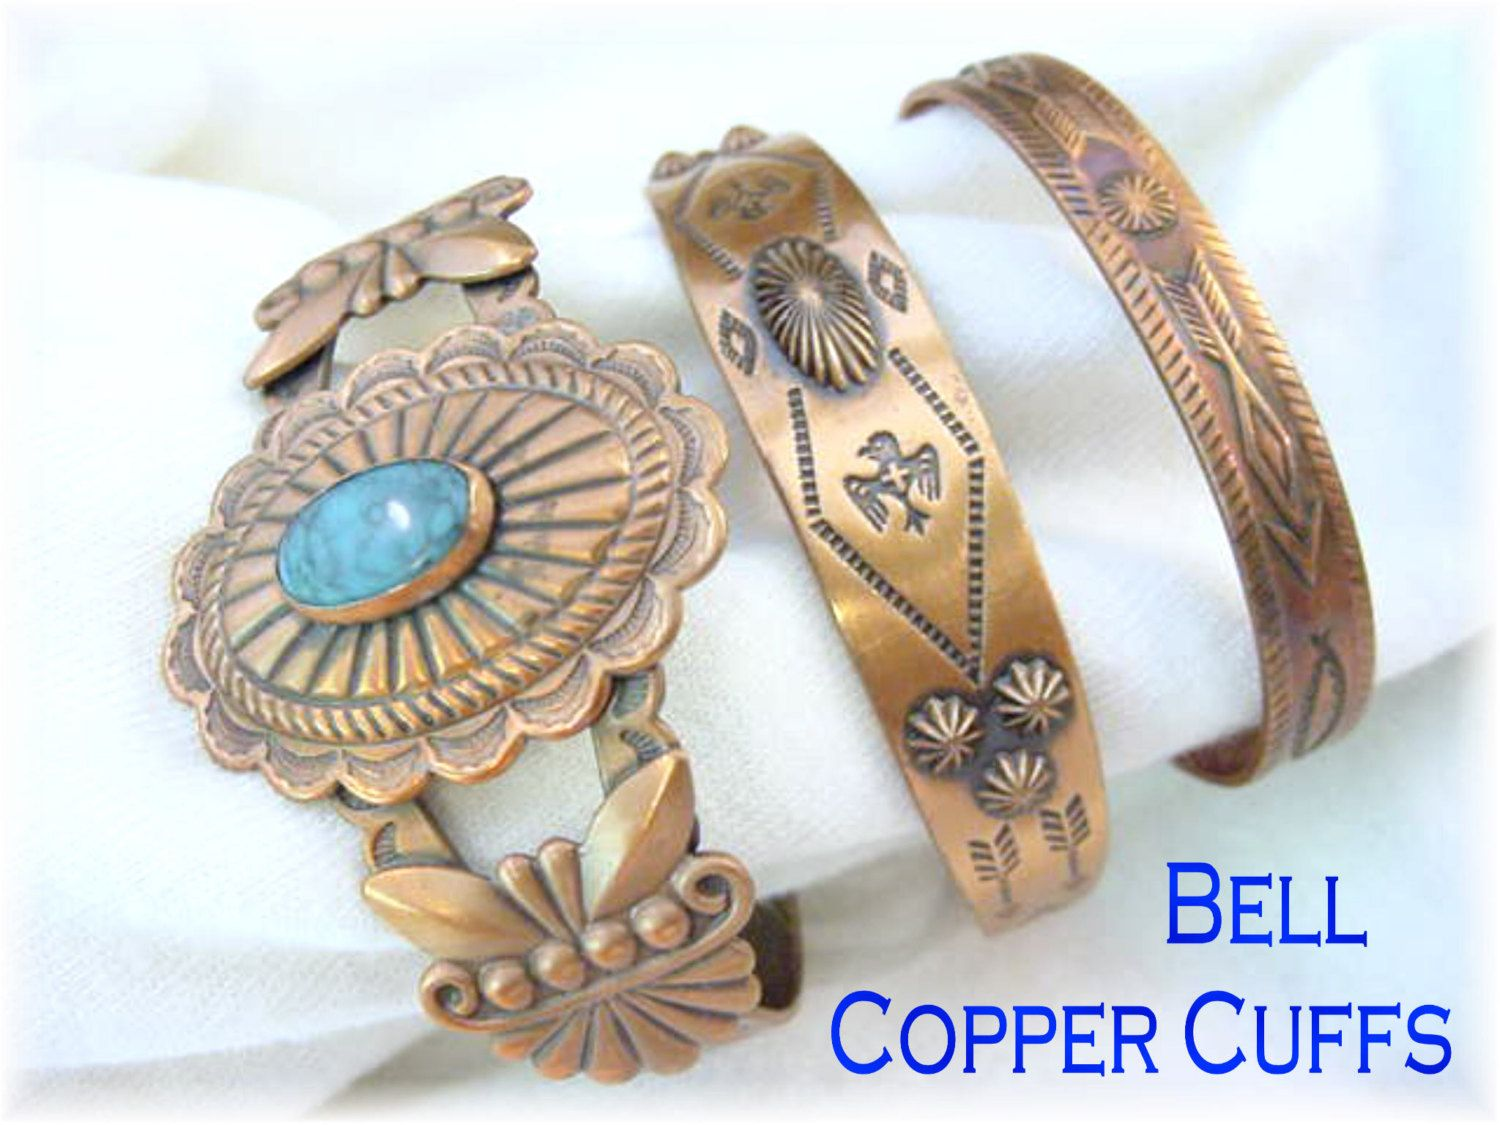 Bell Copper Cuff Native American Bracelet Set - Kingman Turquoise - Western Navajo Concho Thunderbird Snakes - Arizona Estate FREE SHIPPING